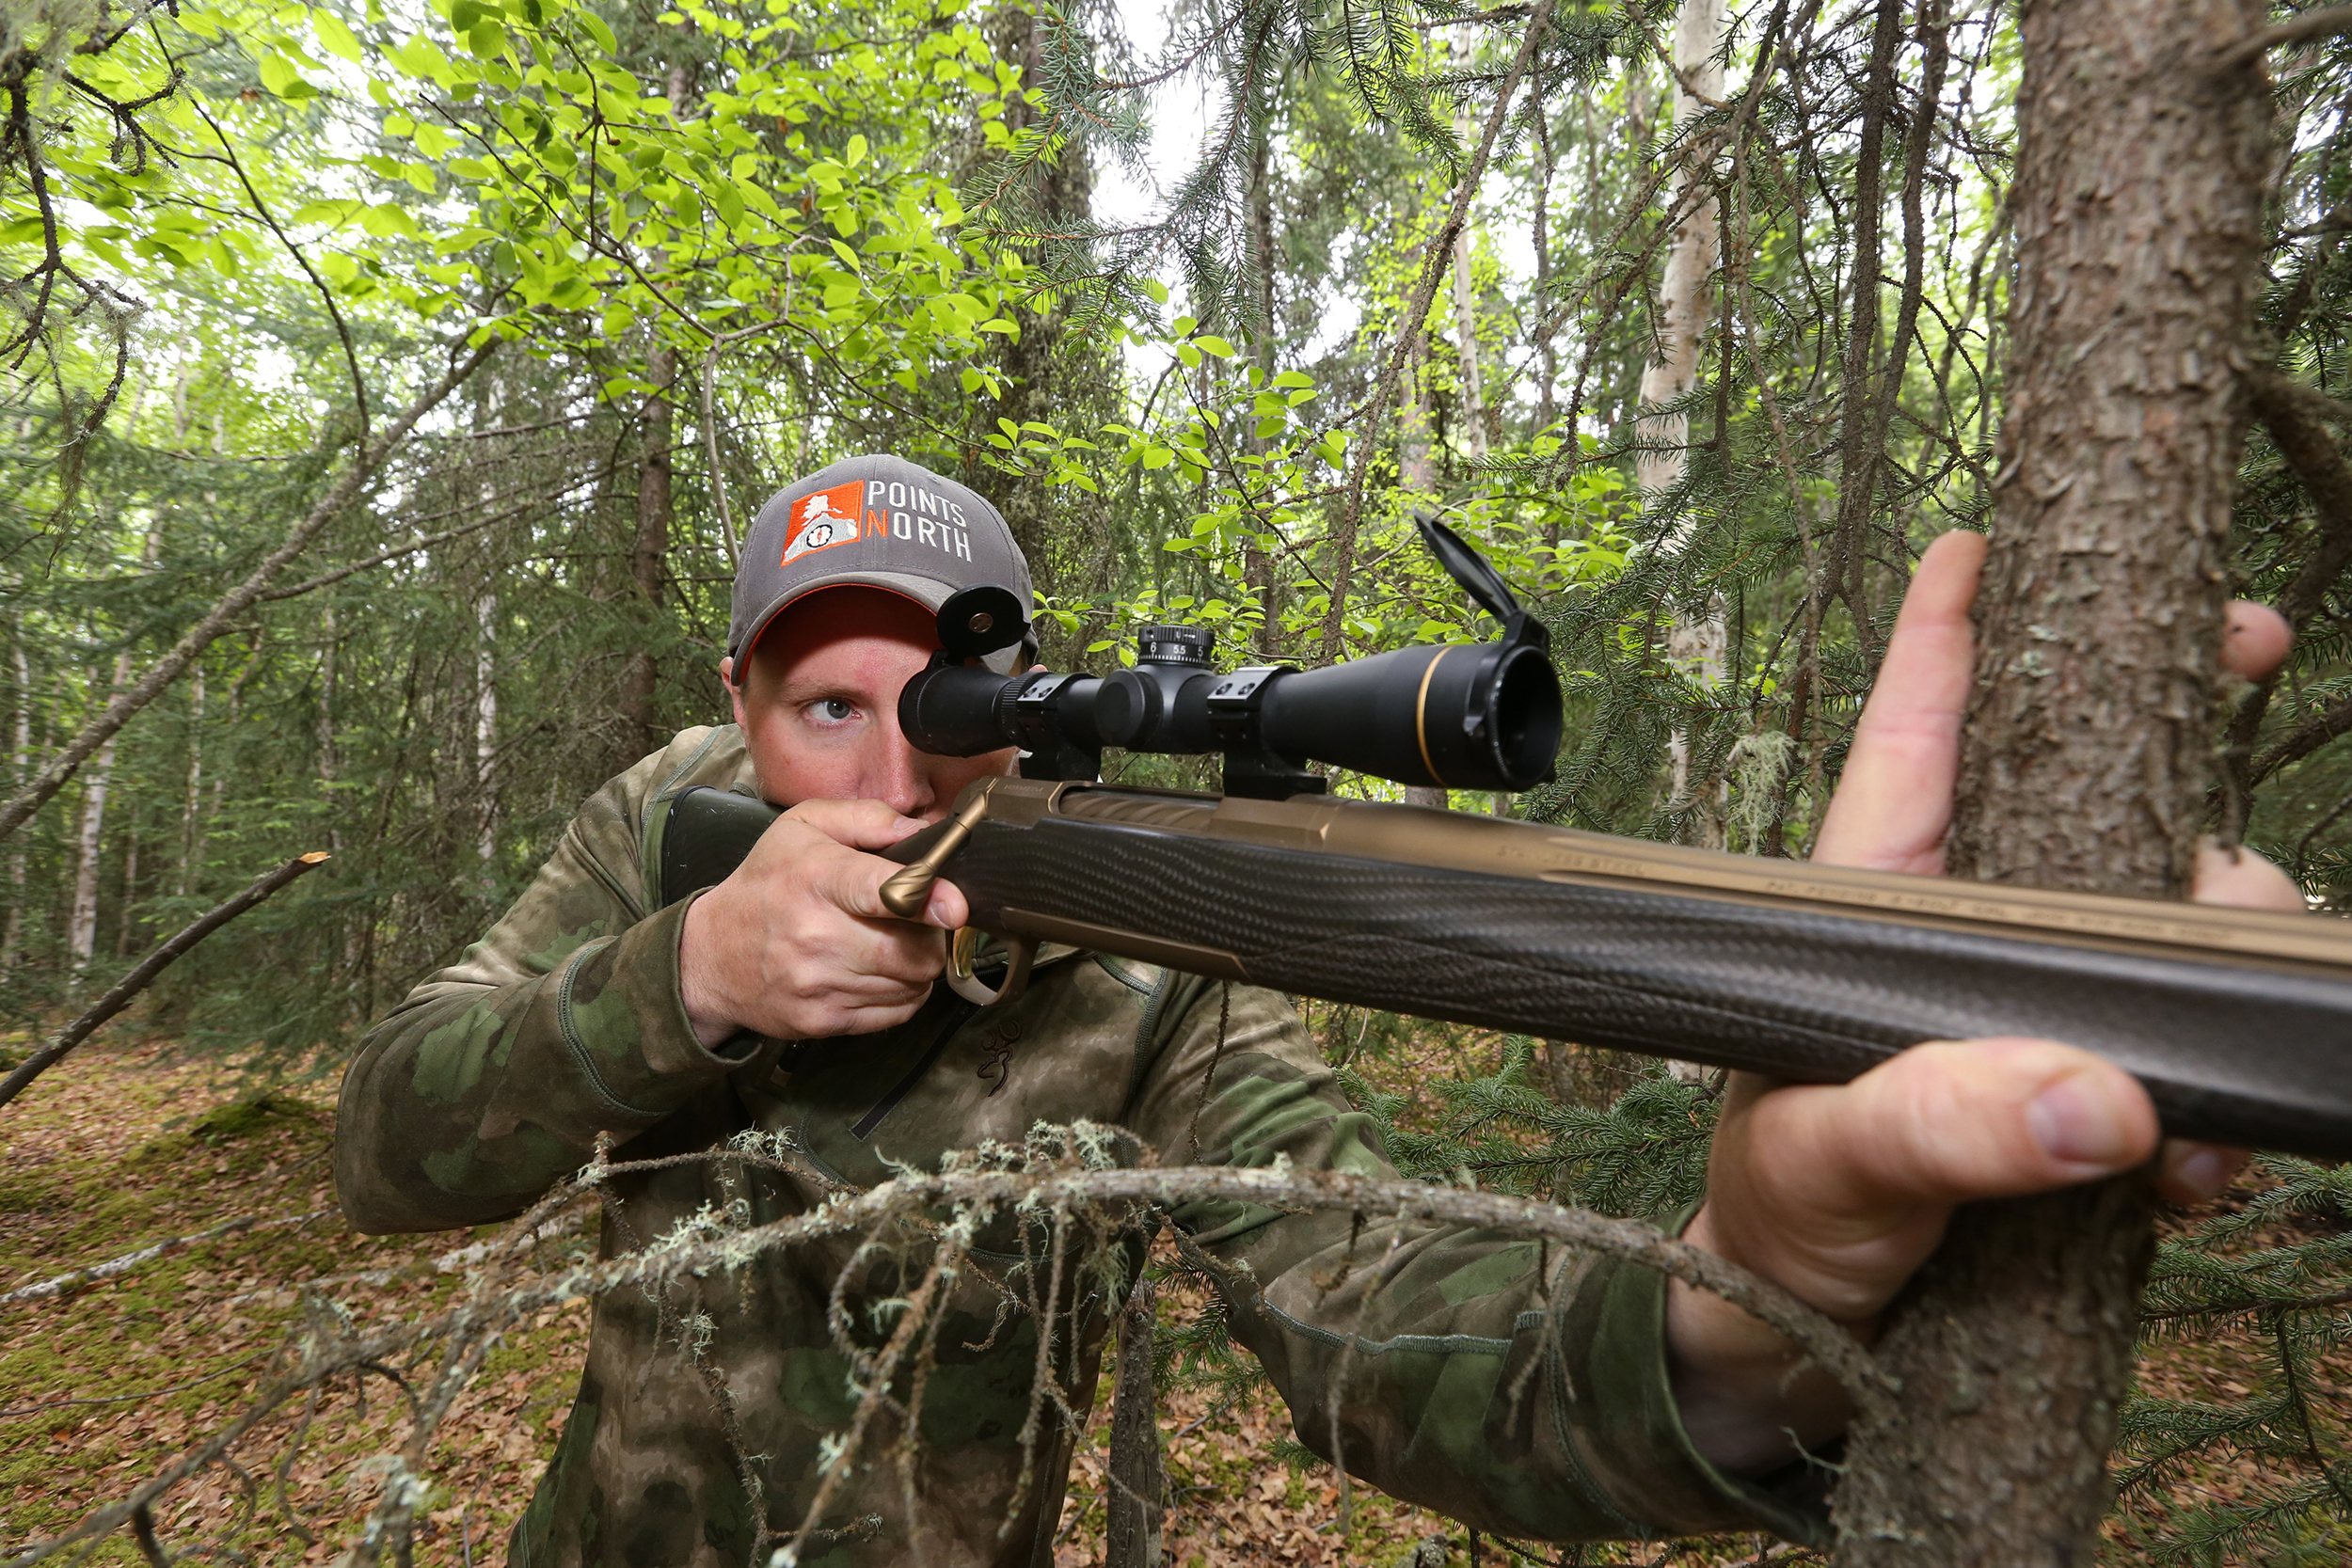 The-fight-over-Alaska's-hunting-rules-runs-deeper-than-using-doughnuts-to-bait-bears